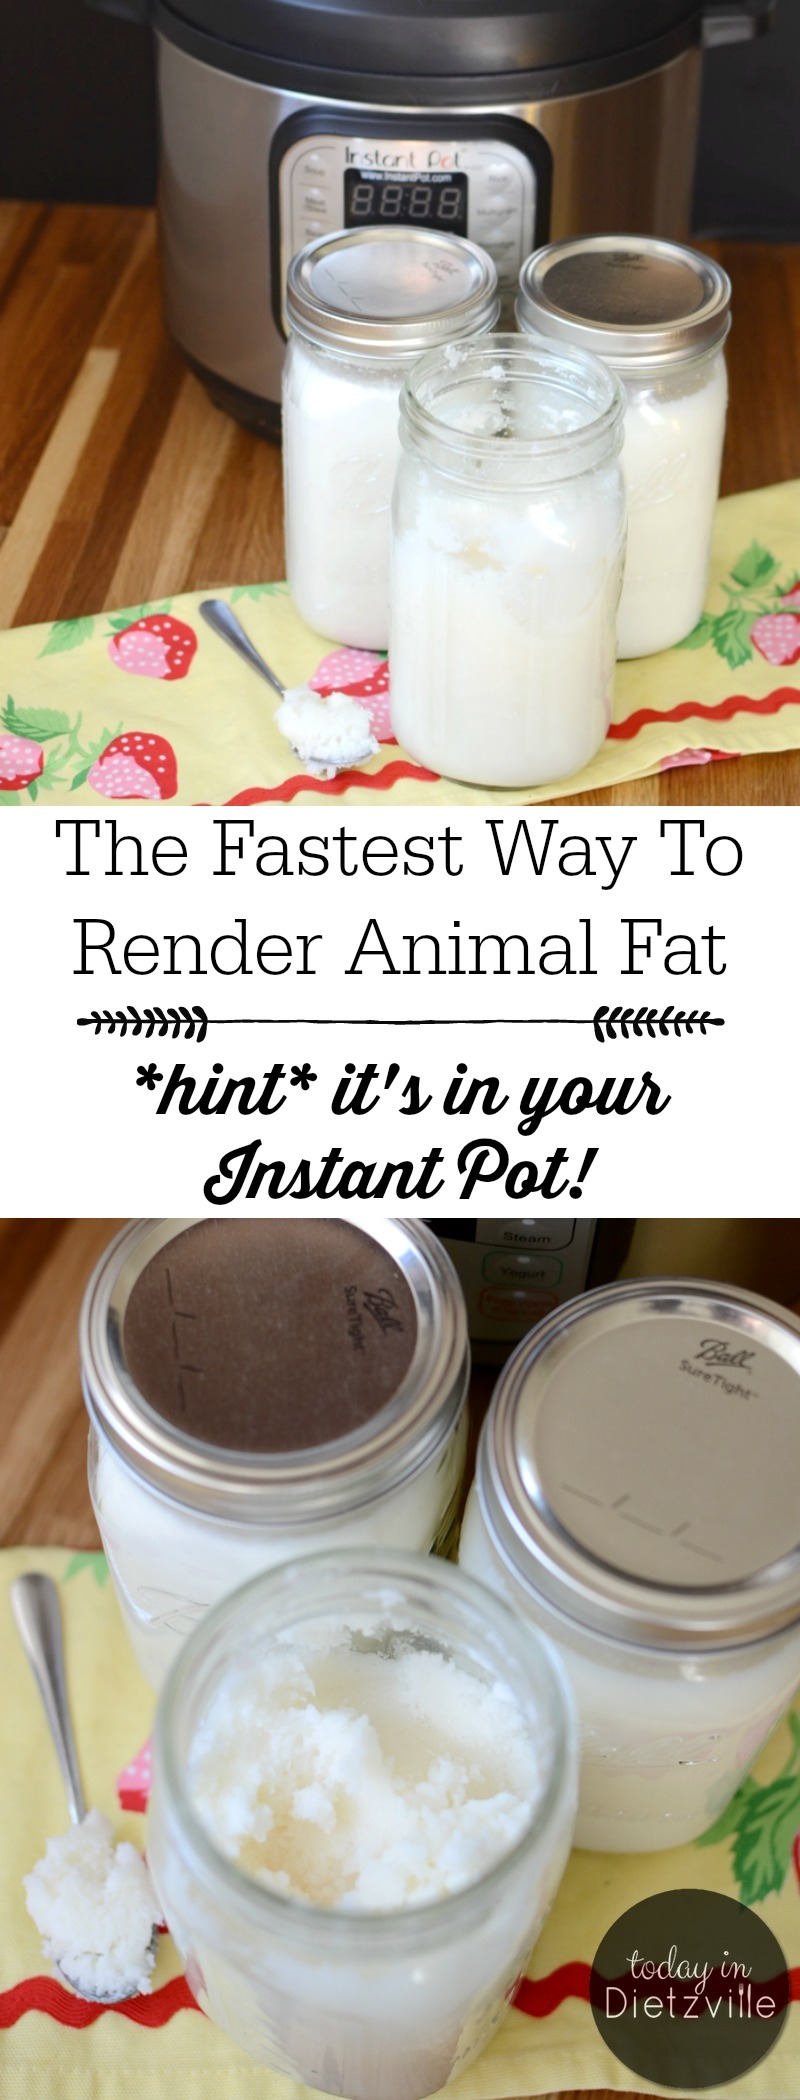 jars of white rendered animal fat in the Instant Pot